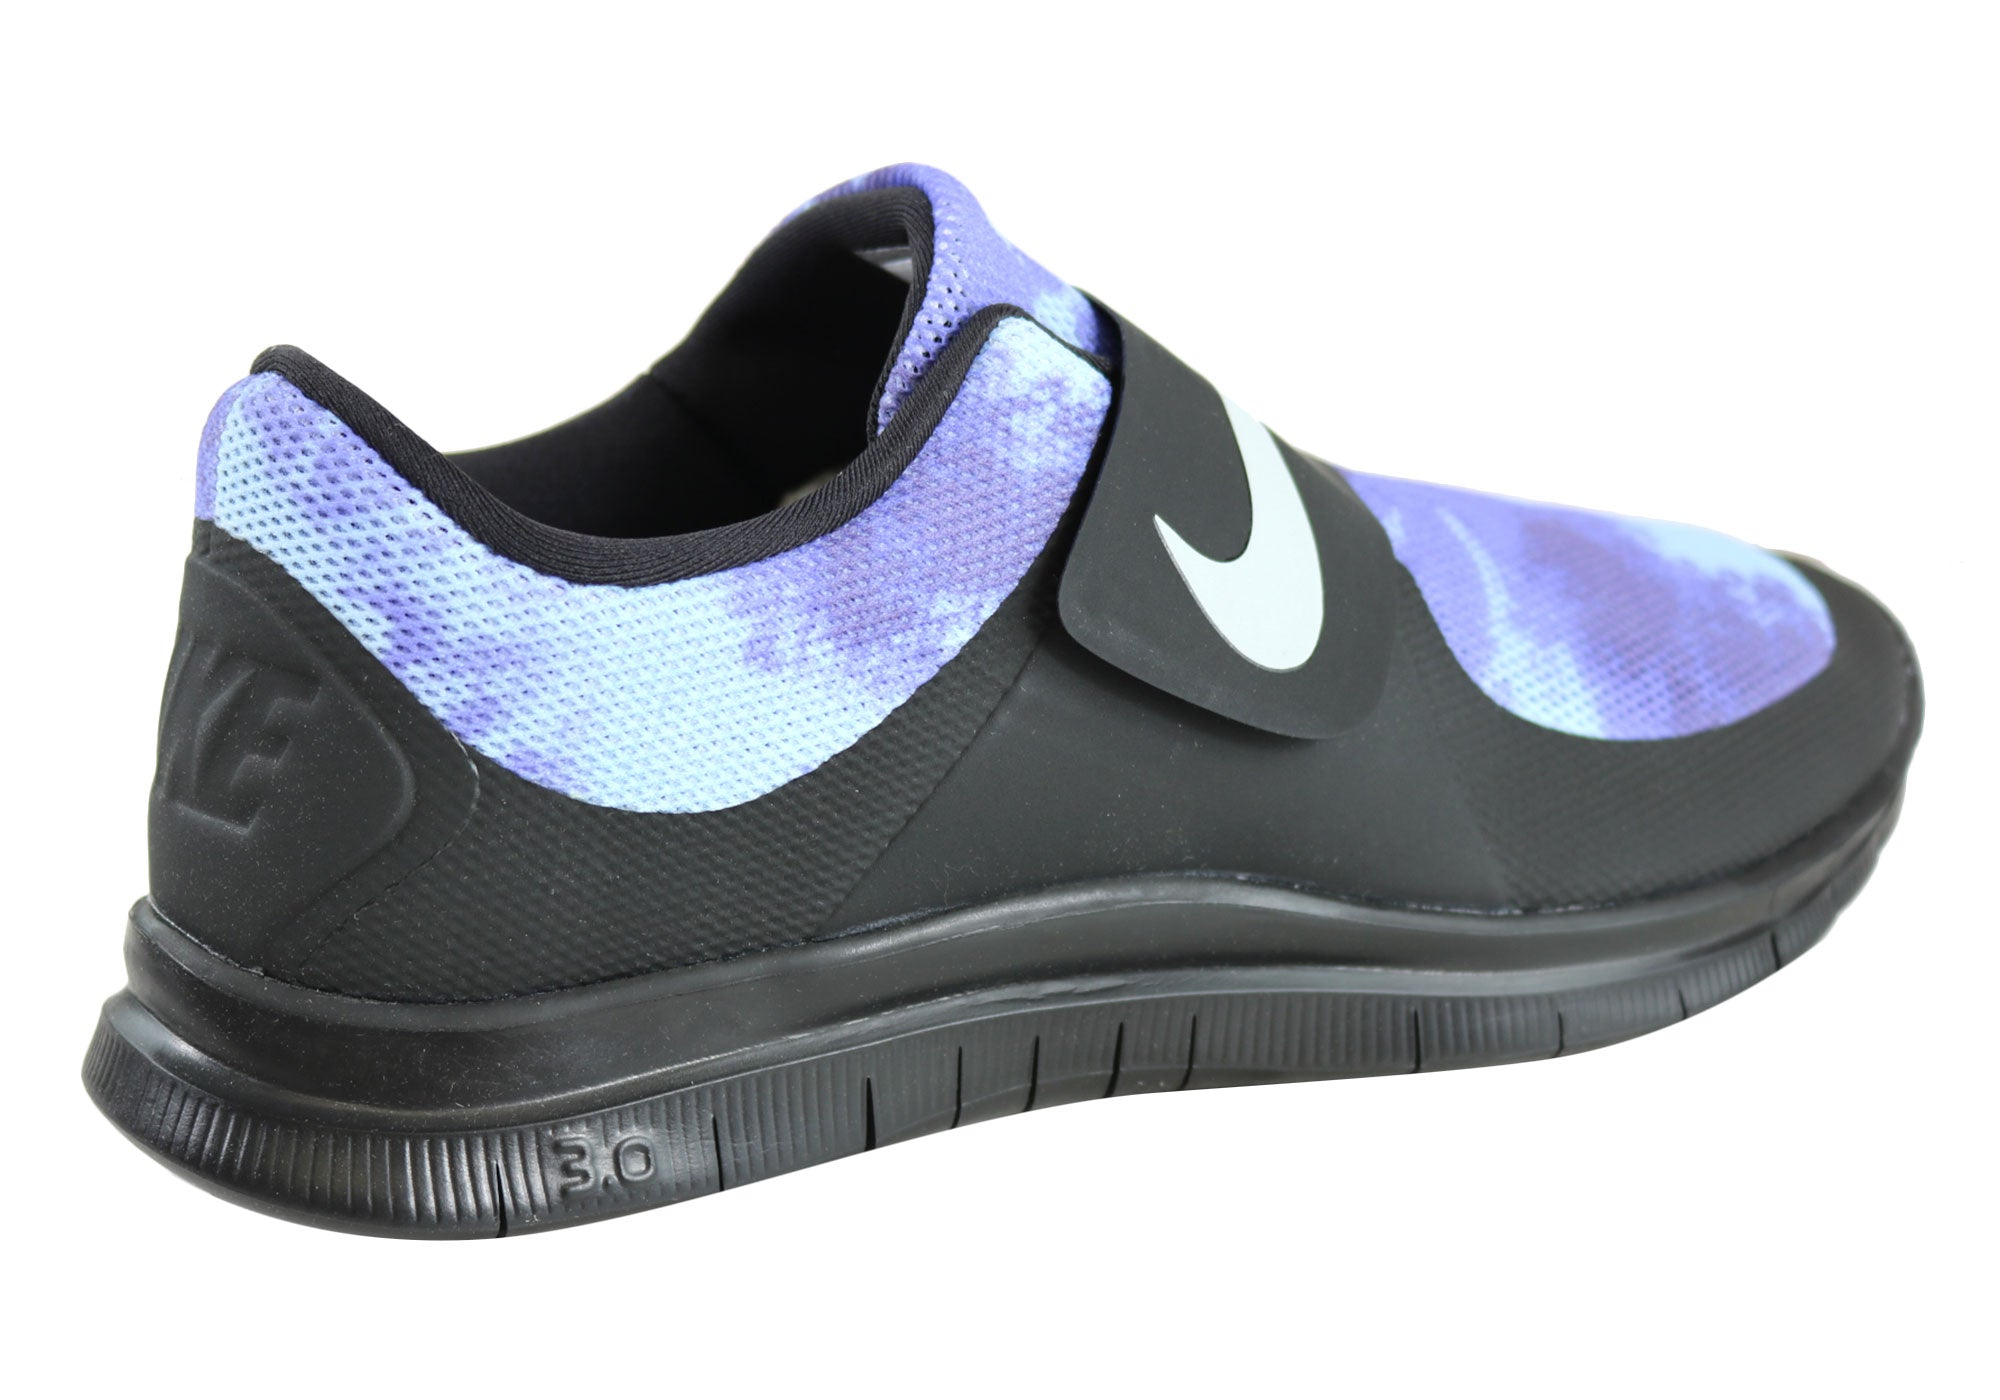 new product b81d0 9fd66 New Mens Nike Free Socfly Sd Slip On Comfortable Lightweight